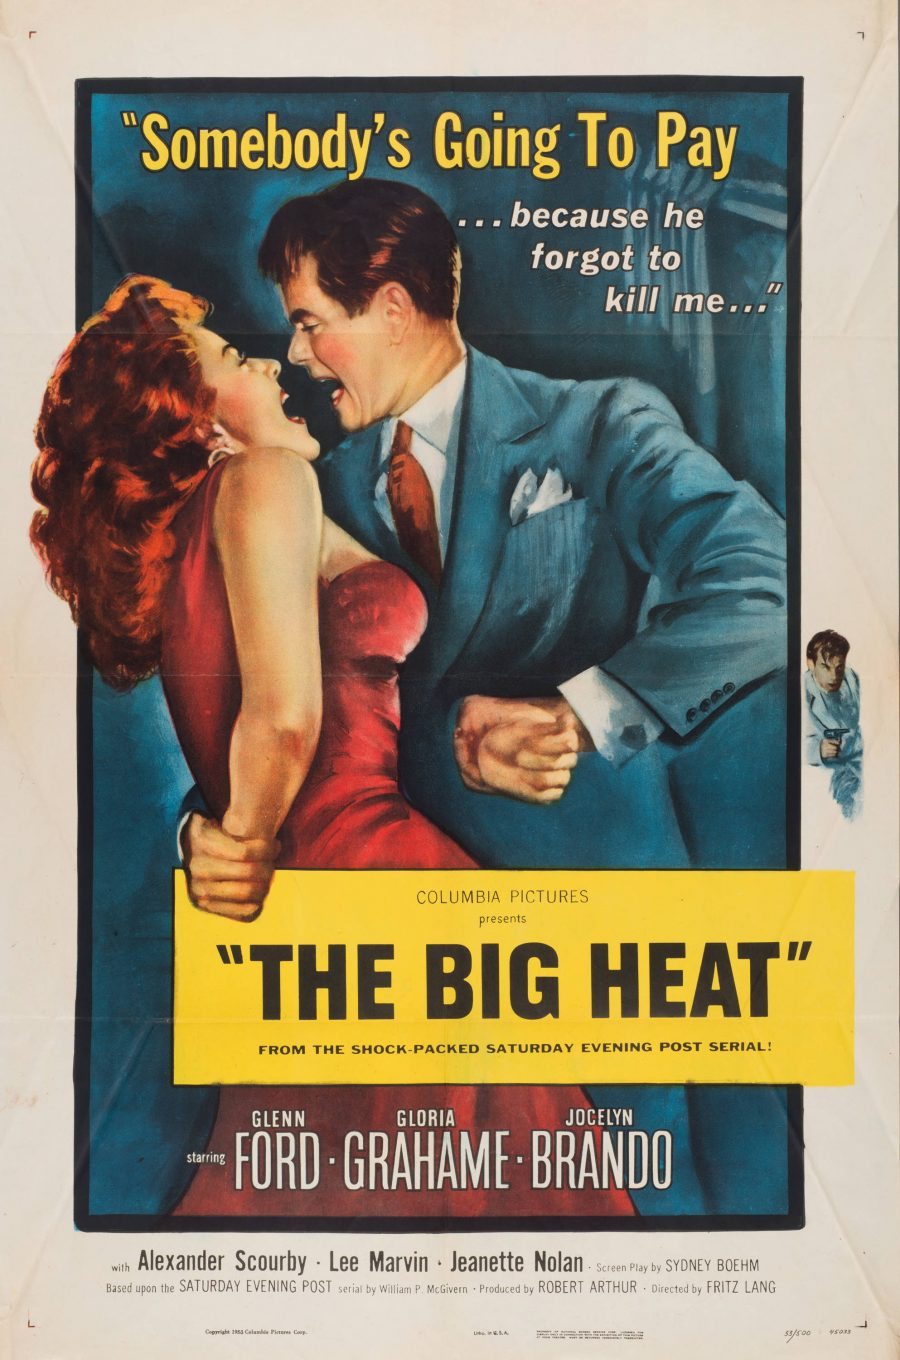 10,000 Classic Movie Posters Getting Digitized & Put Online by the Harry Ransom Center at UT-Austin: Free to Browse & Download Artes & contextos The Big Heat e1516348098796